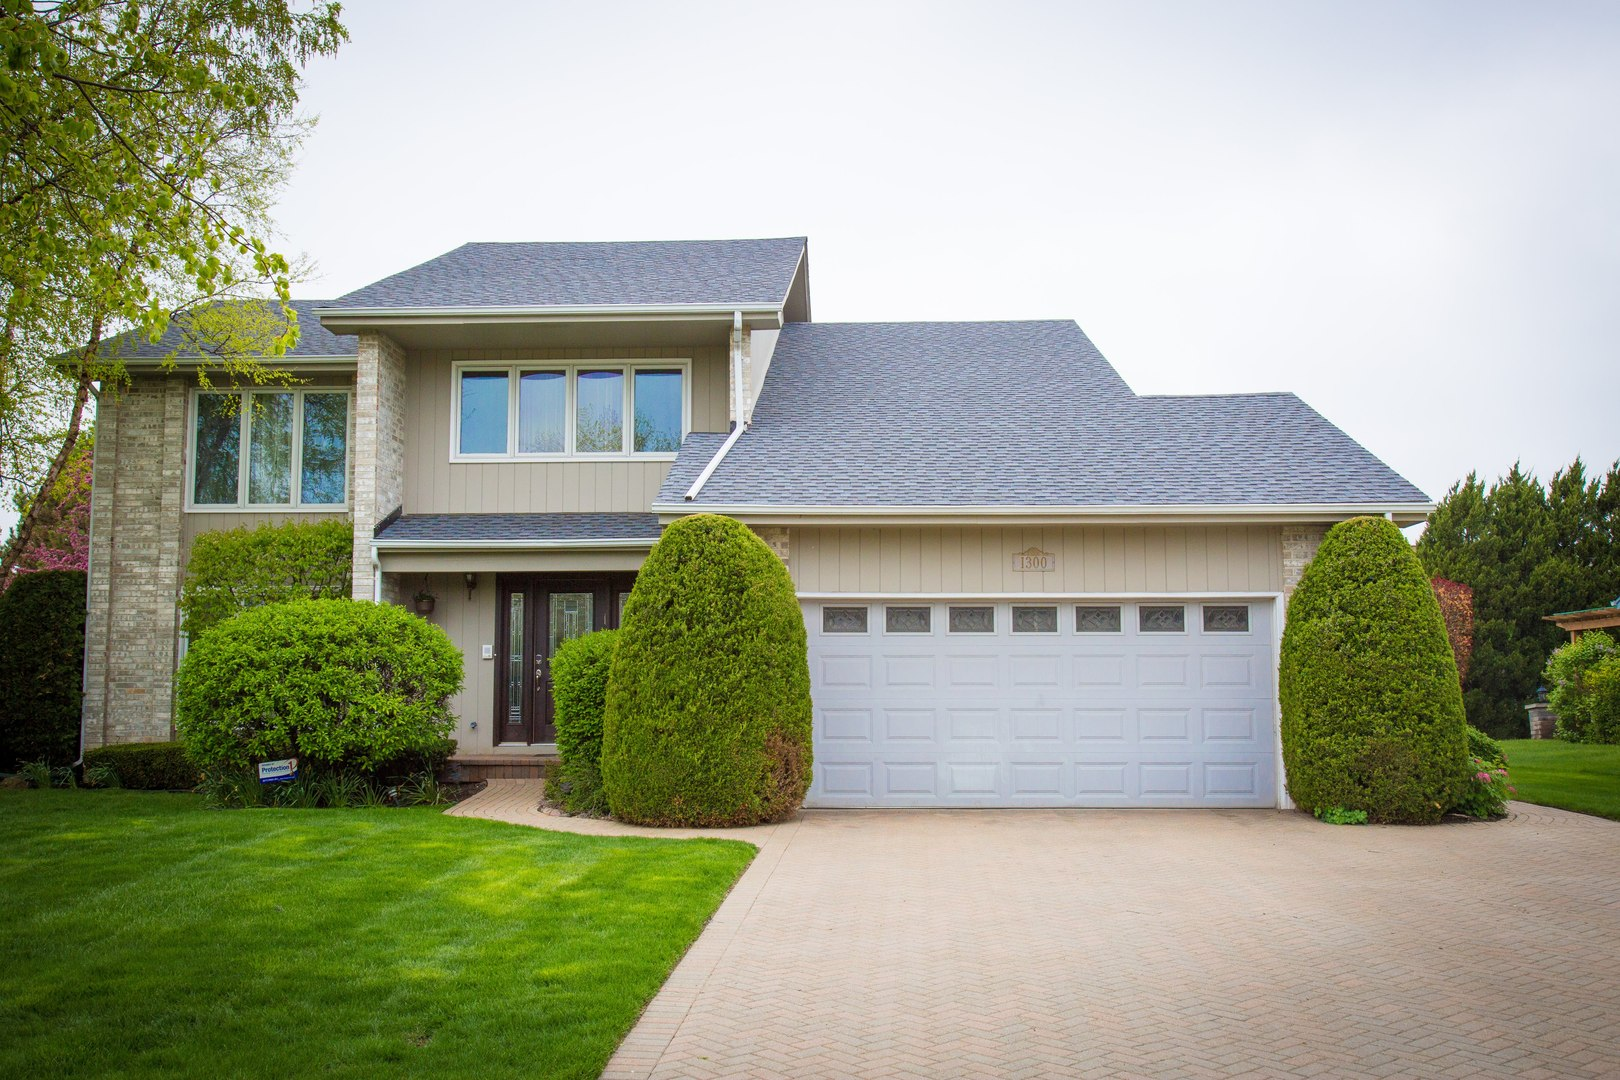 1300 Whitney Lane, Buffalo Grove in Lake County, IL 60089 Home for Sale